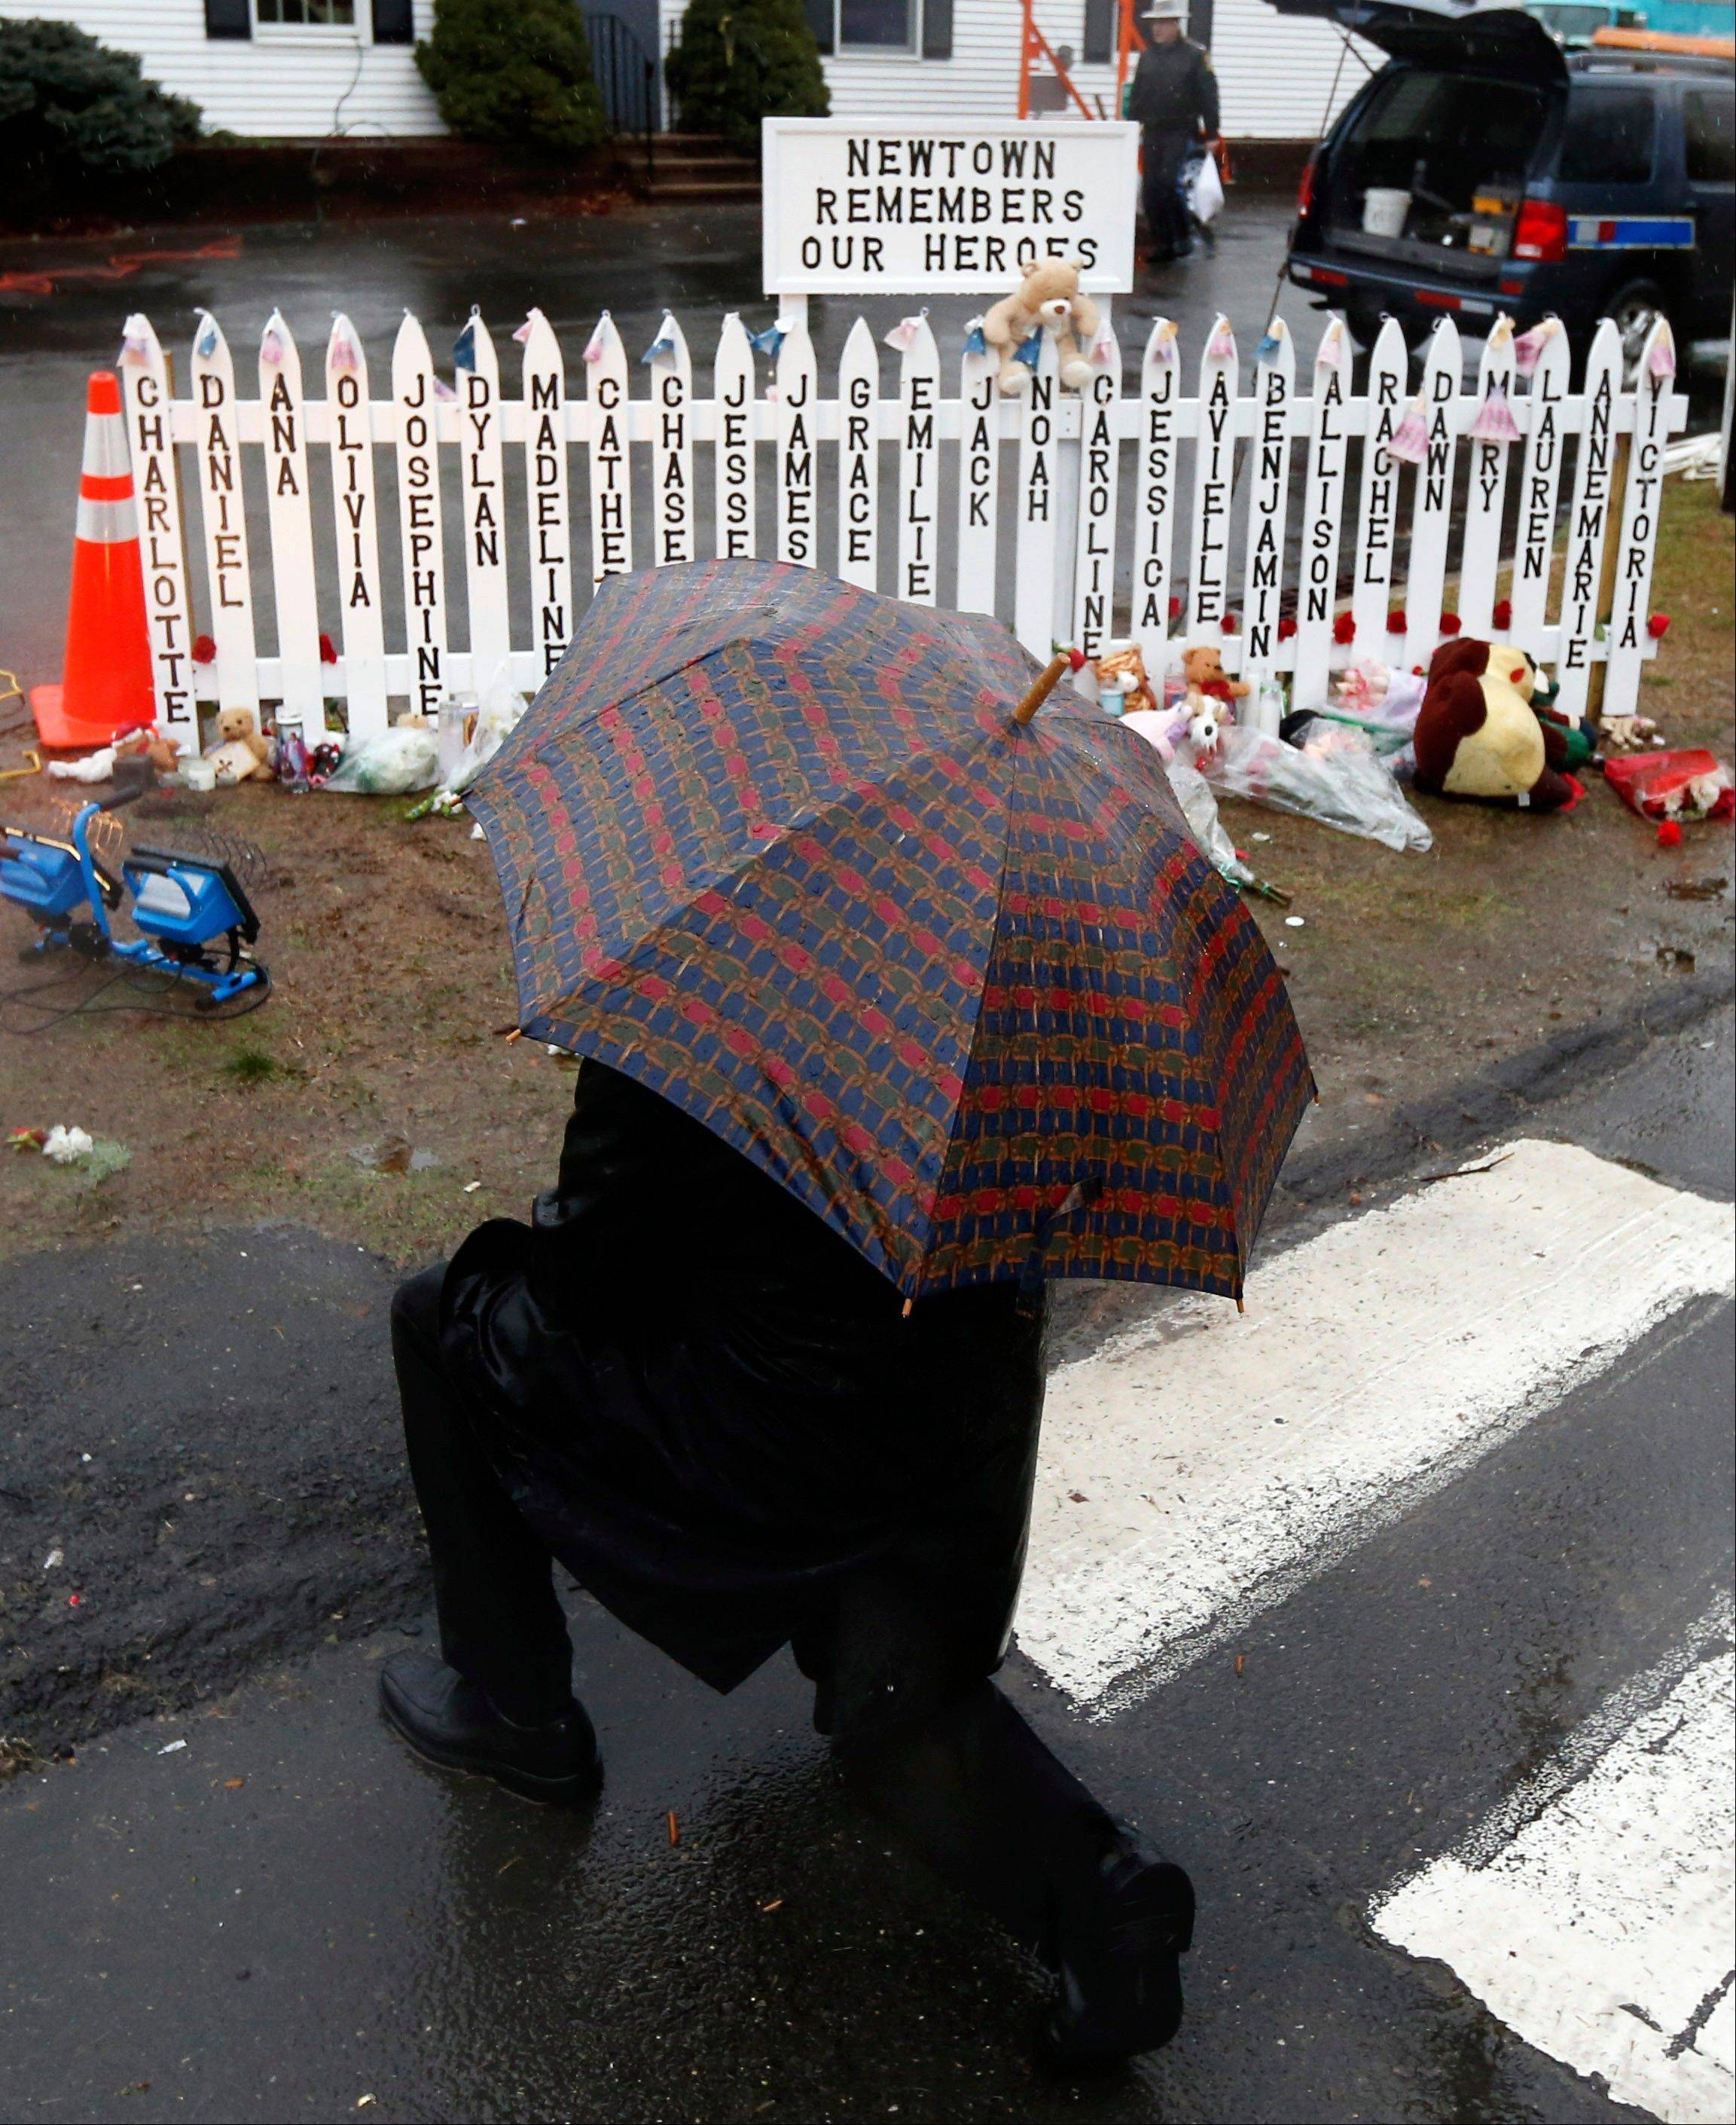 A man kneels in front of a makeshift memorial Friday during a moment of silence at 9:30 a.m. in Newtown, Conn. The chiming of bells reverberated throughout Newtown, commemorating one week since the crackle of gunfire in a schoolhouse killed 20 children and six adults in a massacre that has shaken the community and the nation.